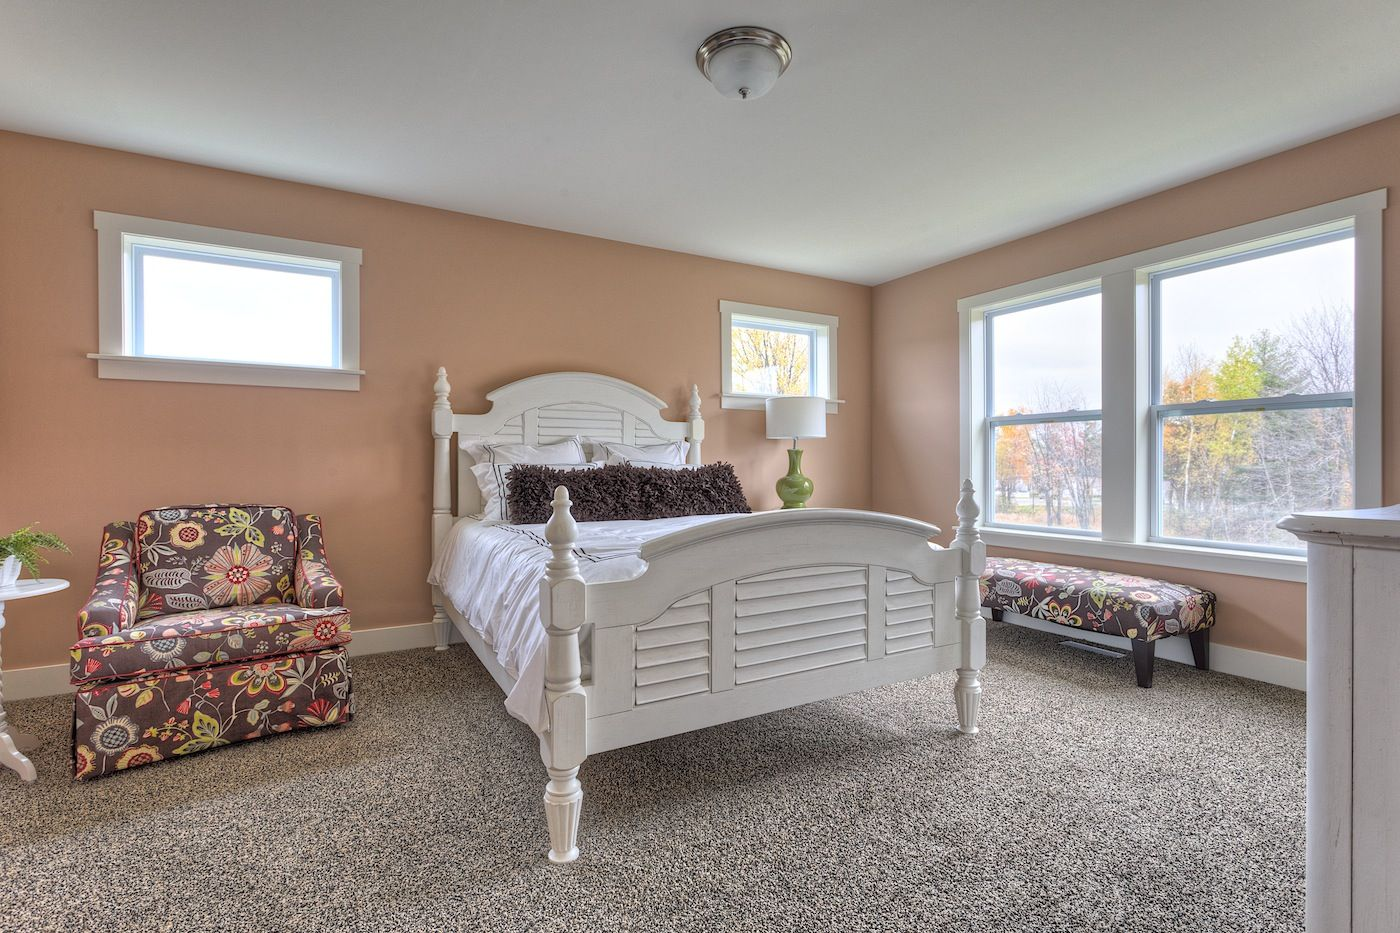 Bedroom featured in the Traditions 2200 V8.0b By Allen Edwin Homes in Grand Rapids, MI